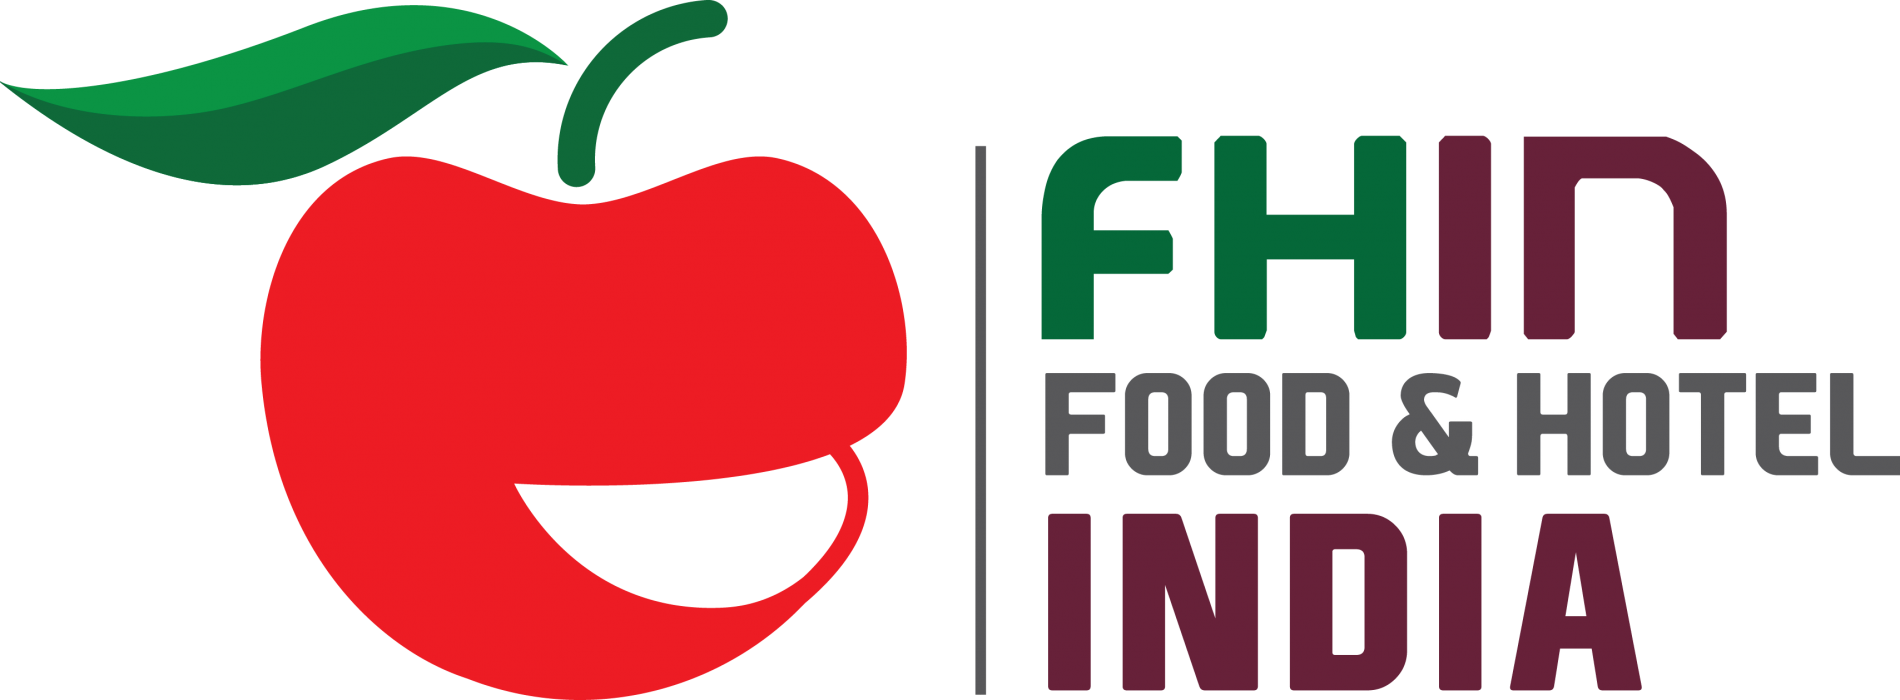 UBM India to launch the maiden edition of Food & Hotel India (FHIn) on September 5